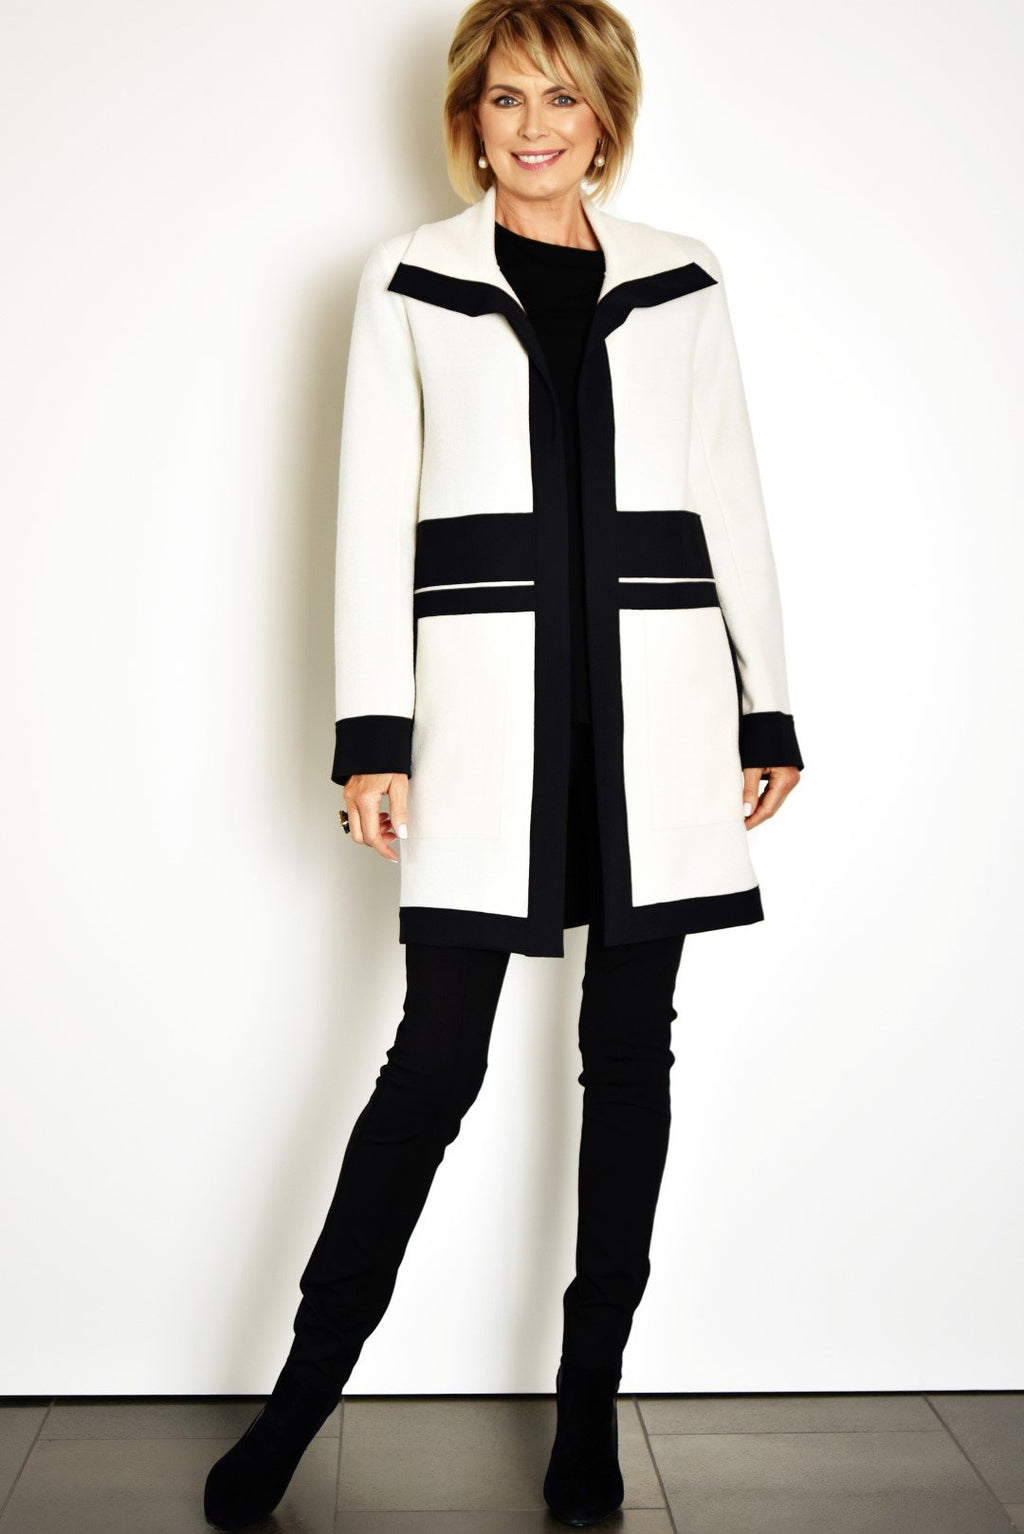 PAULA RYAN Black Trimmed Rufini Coat 8066-Winter White/Black -XS Jacket